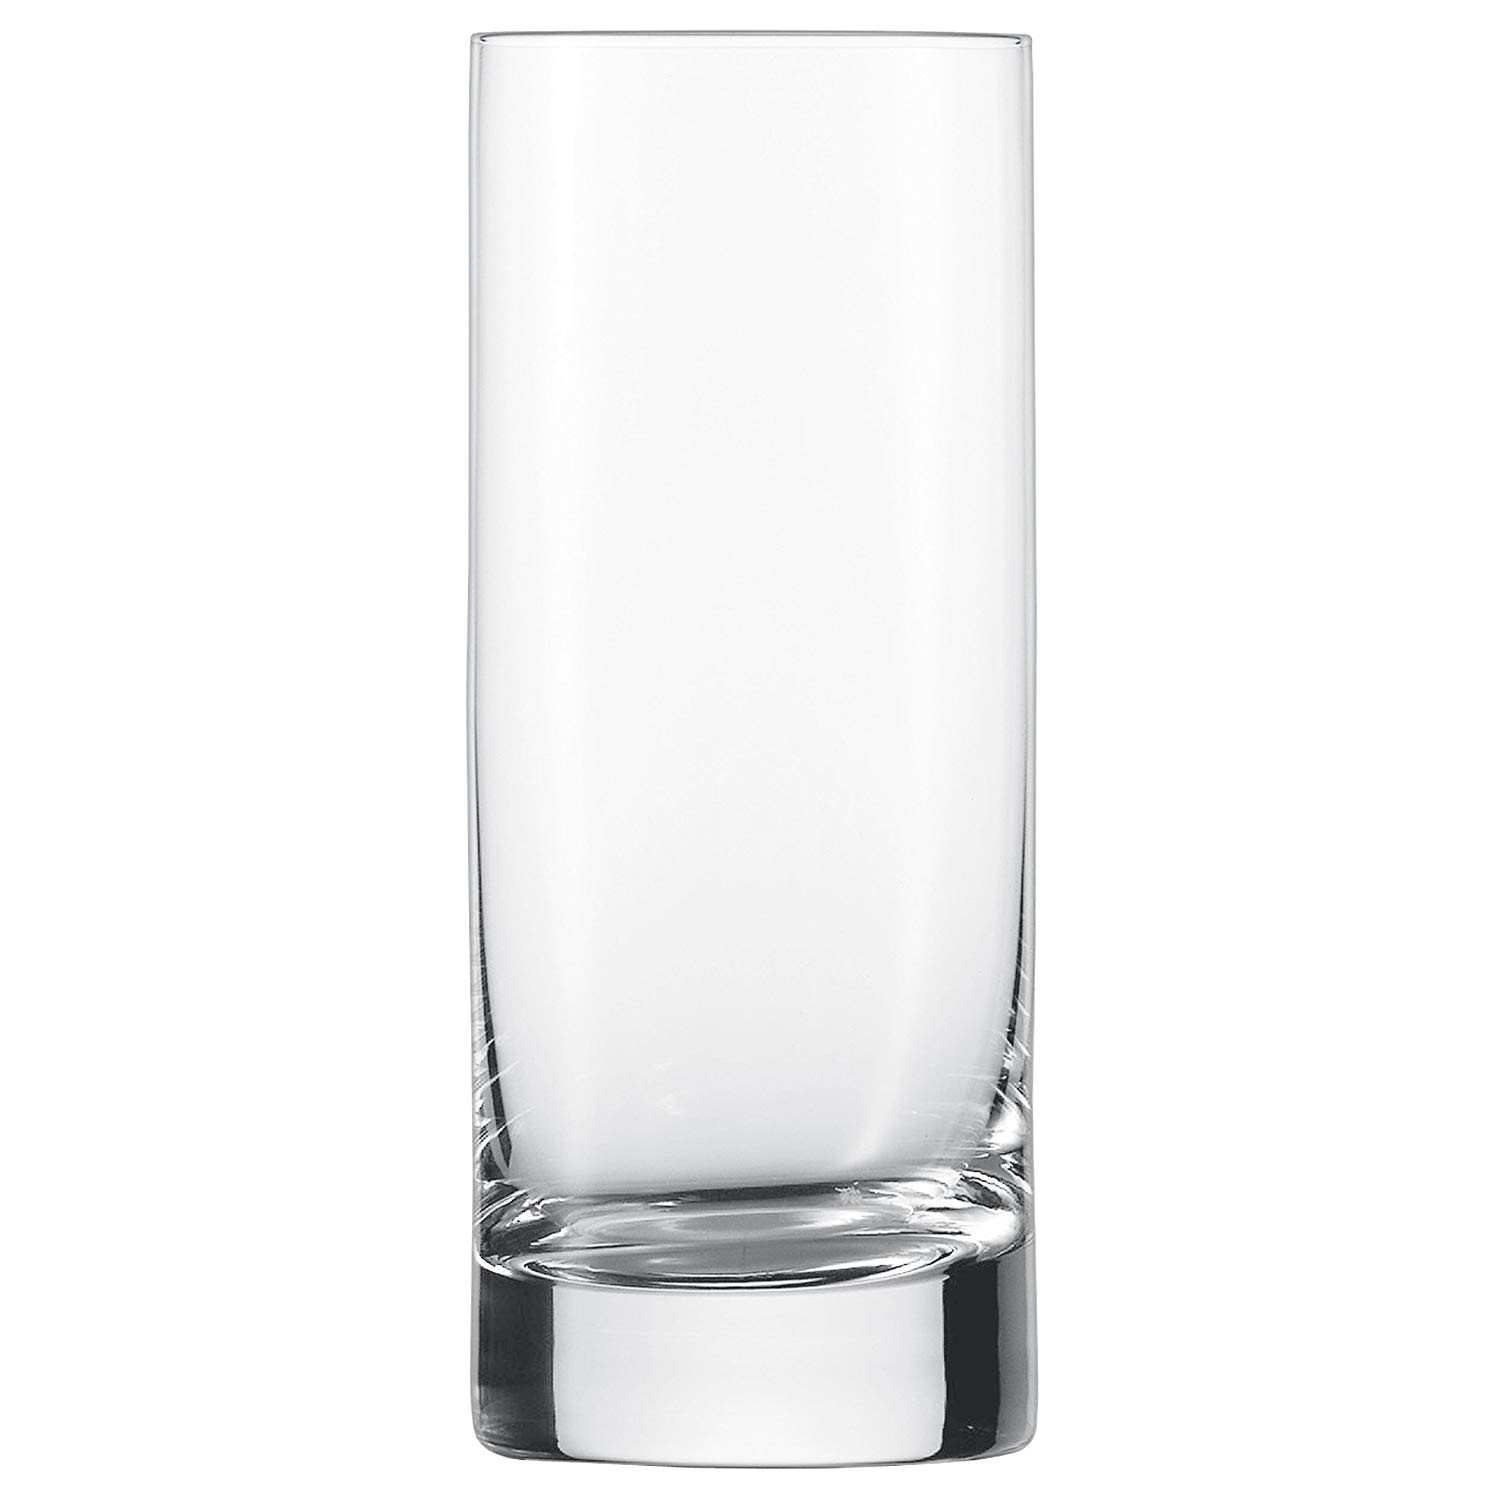 tall fluted glass vase of amazon com schott zwiesel tritan crystal glass paris barware intended for amazon com schott zwiesel tritan crystal glass paris barware collection collins long drink cocktail glass 11 1 ounce set of 6 old fashioned glasses